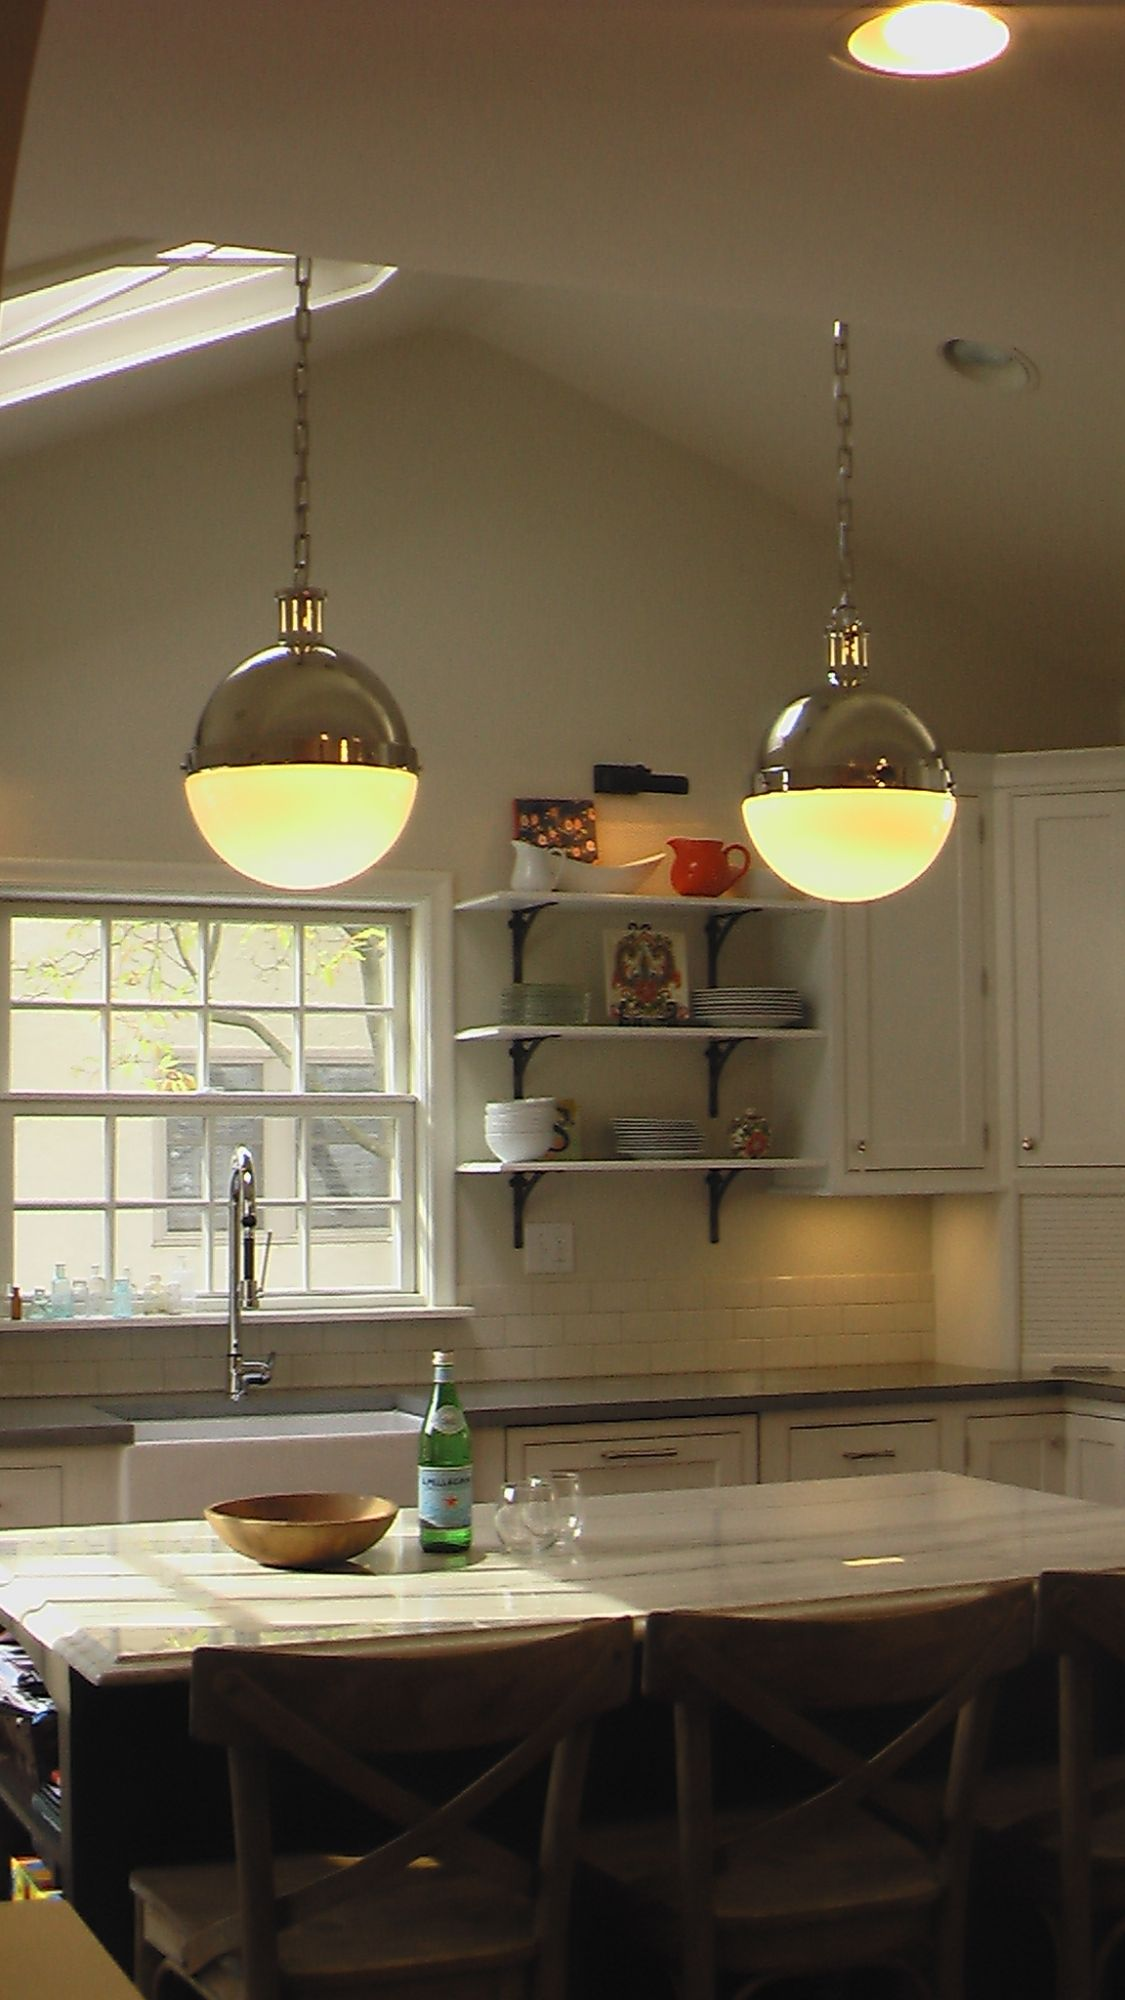 Island with pendant lights and open shelves in background cultivate